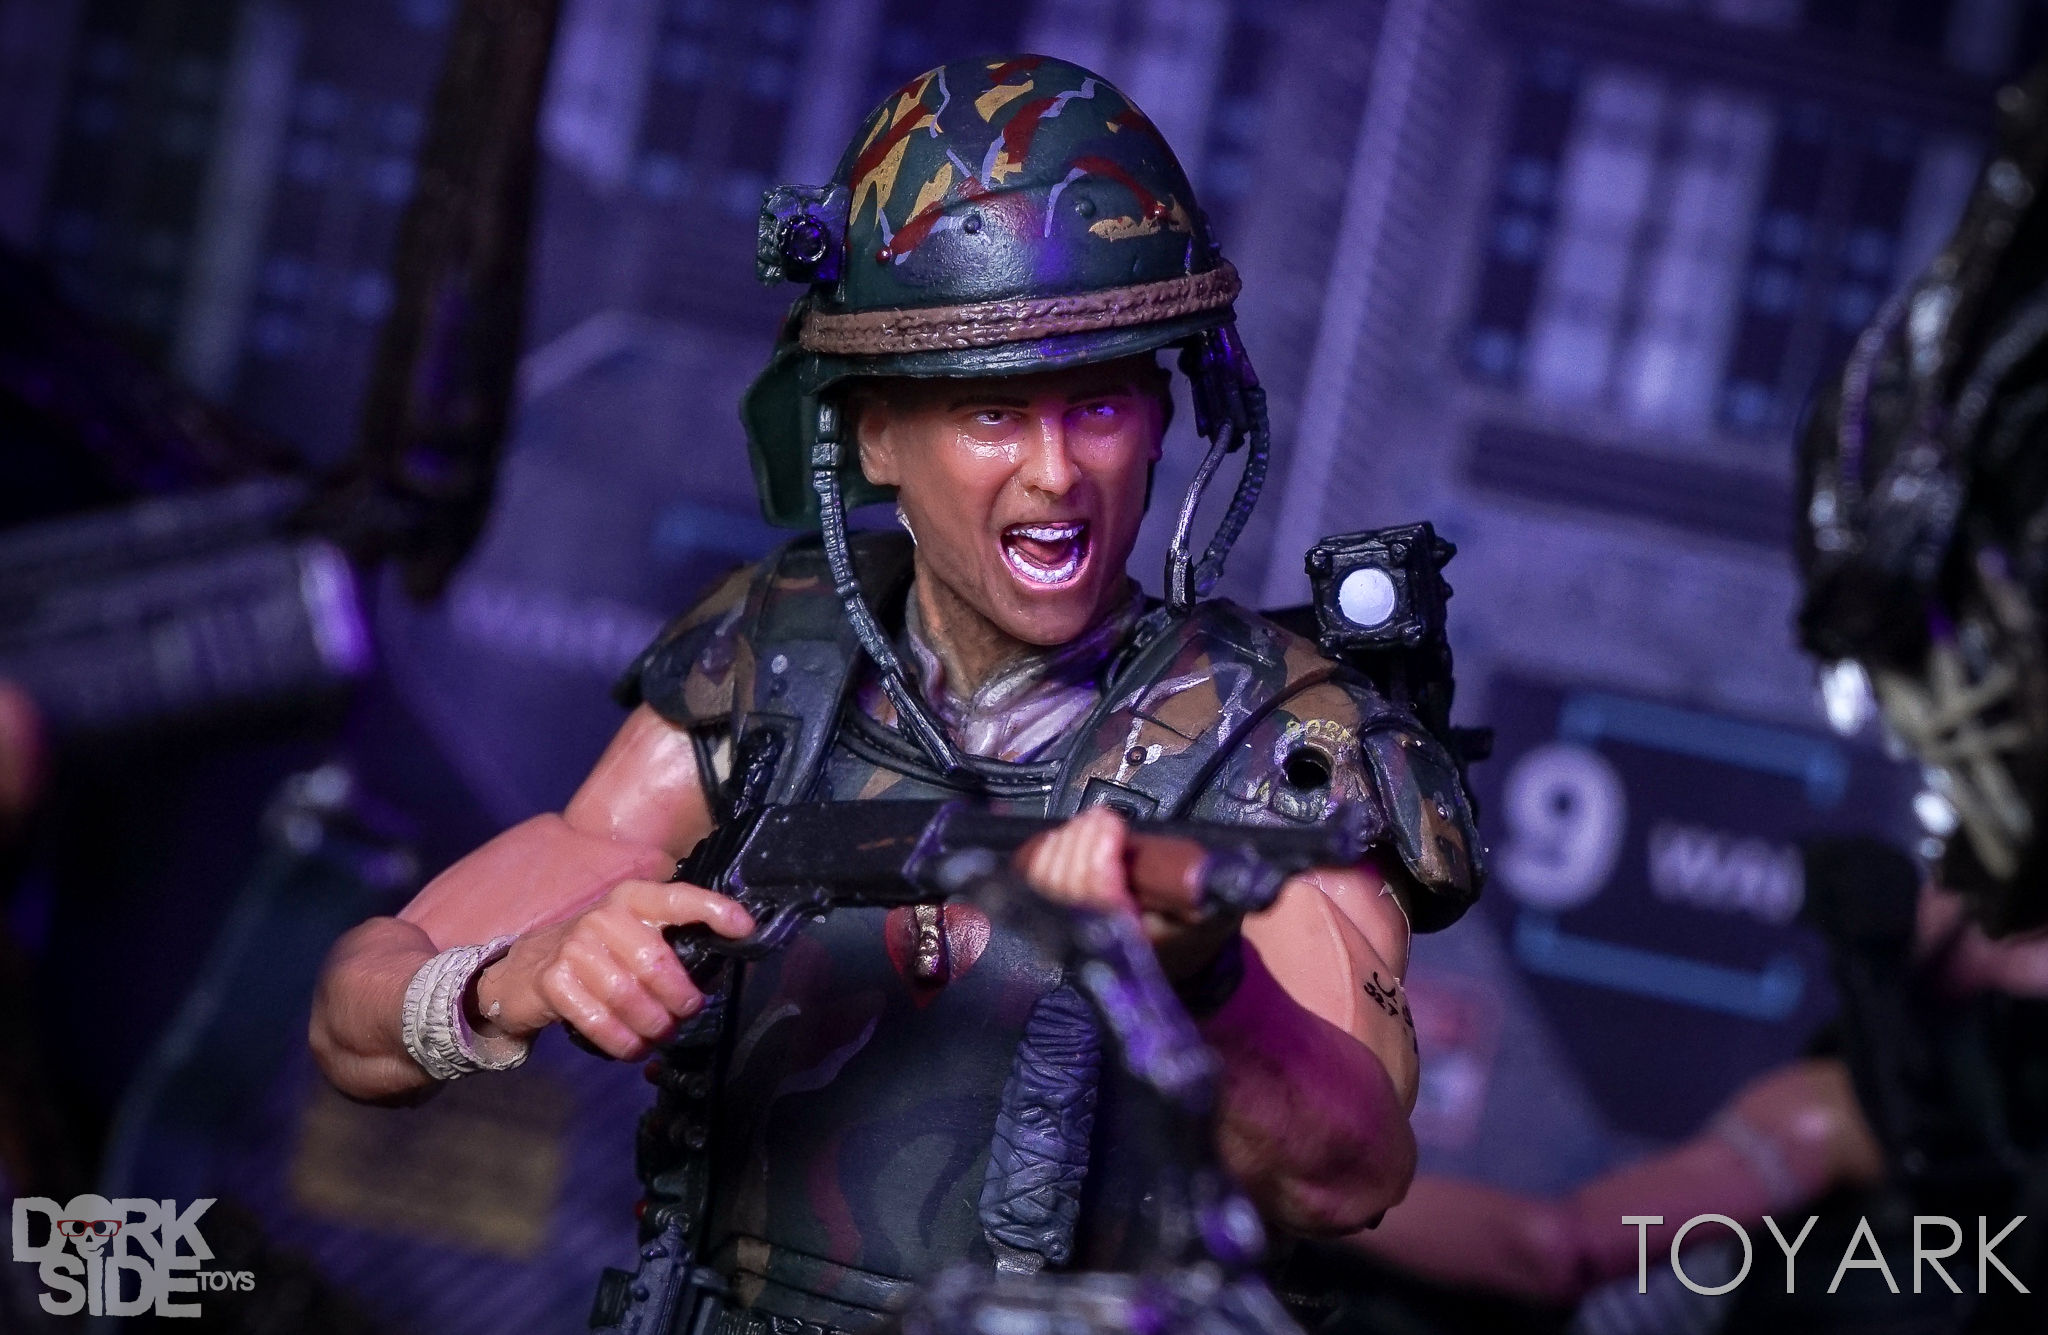 http://news.toyark.com/wp-content/uploads/sites/4/2017/03/NECA-Aliens-Colonial-Marines-2-Pack-034.jpg